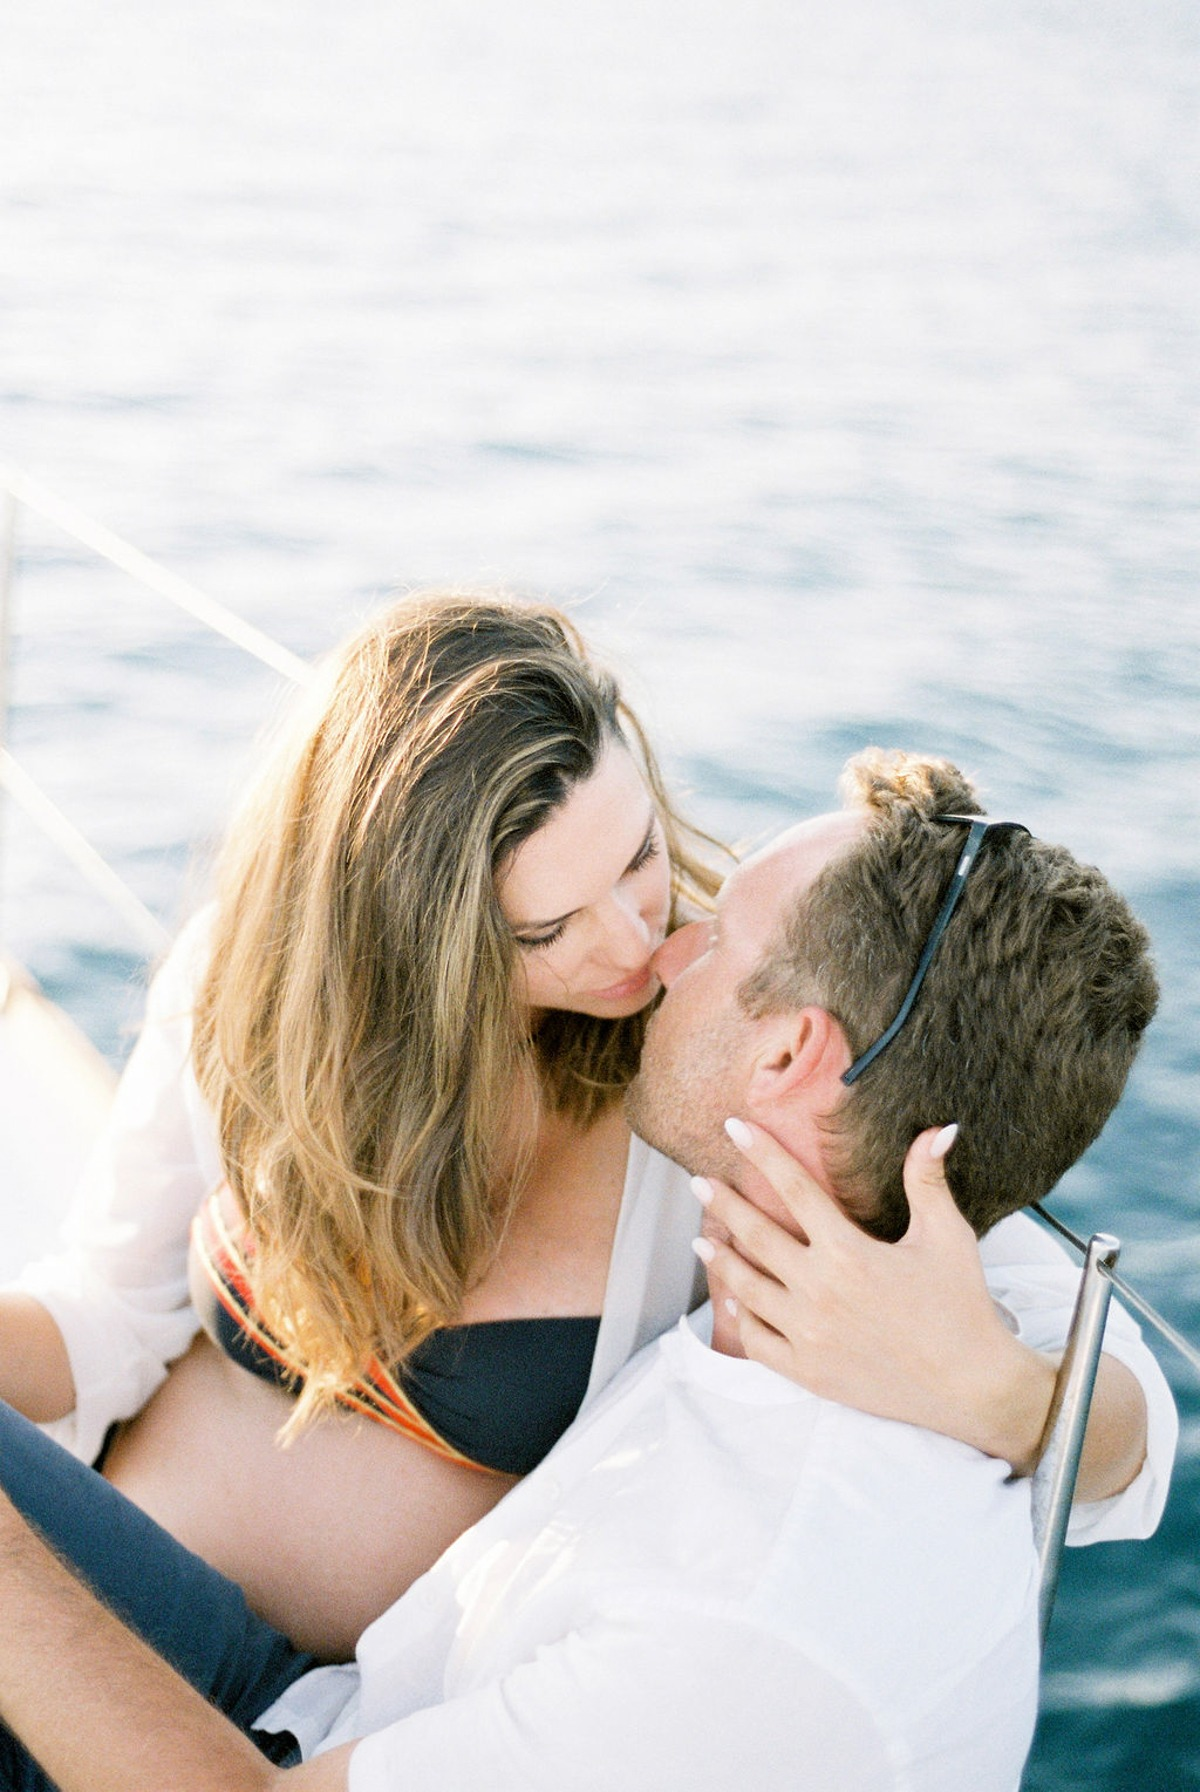 A Sailboat Wedding Anniversary Off The Coast of Greece